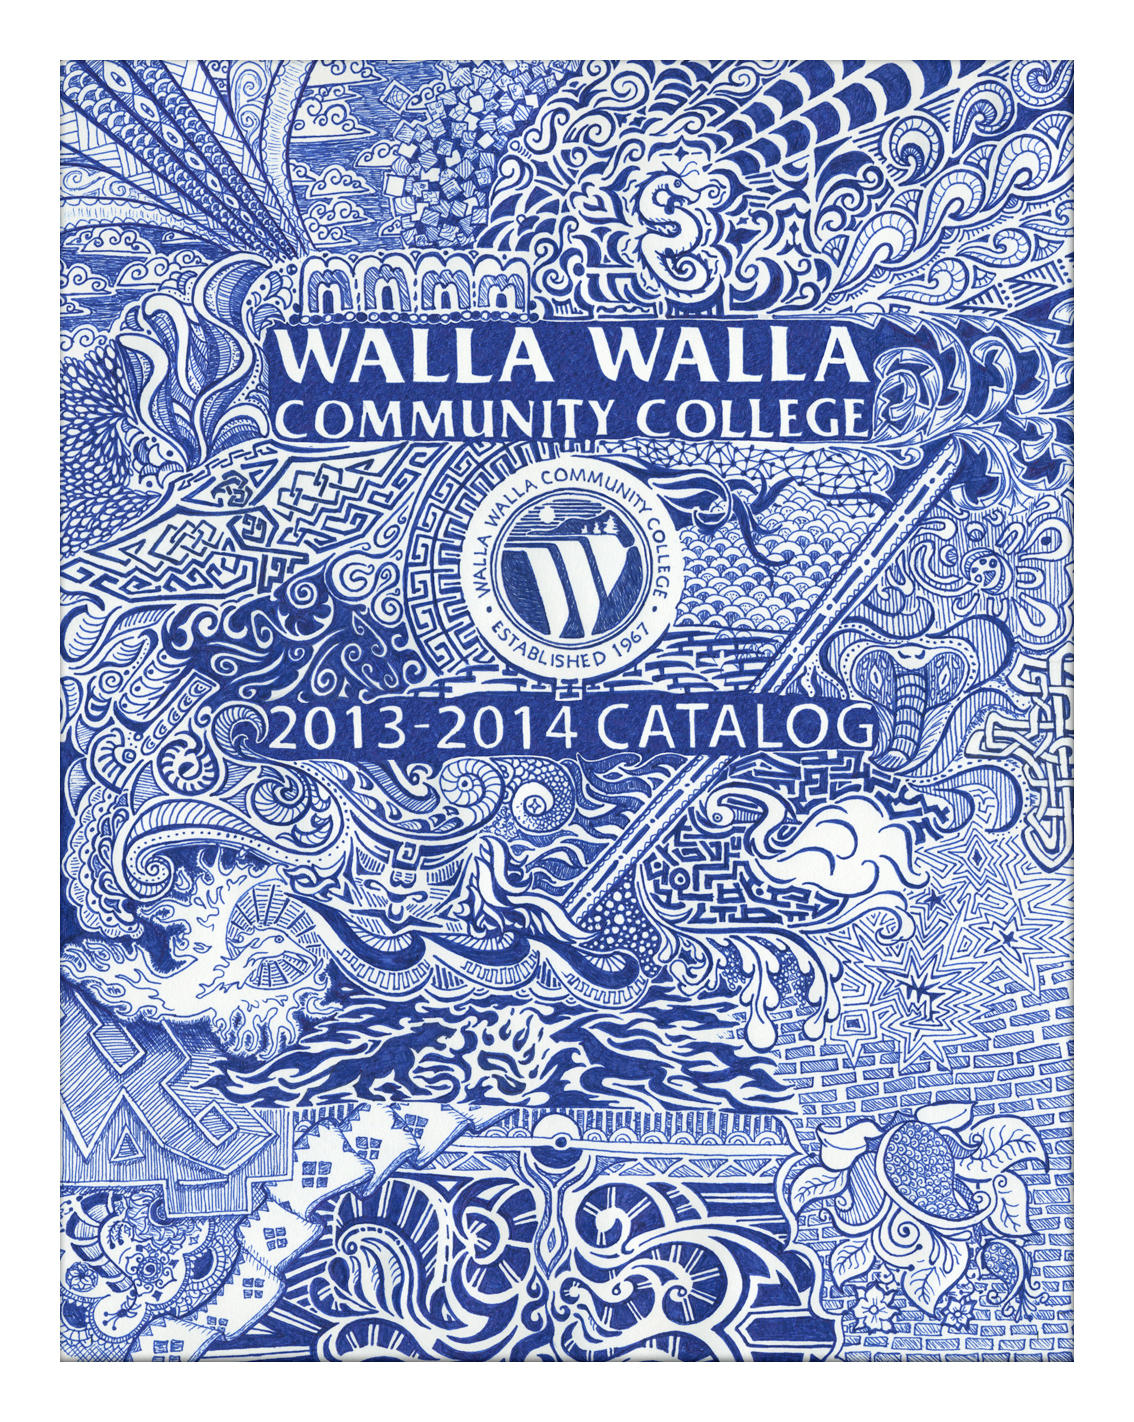 WWCC Catalog Cover 2013-14: Doodle Cover by GoaliGrlTilDeath